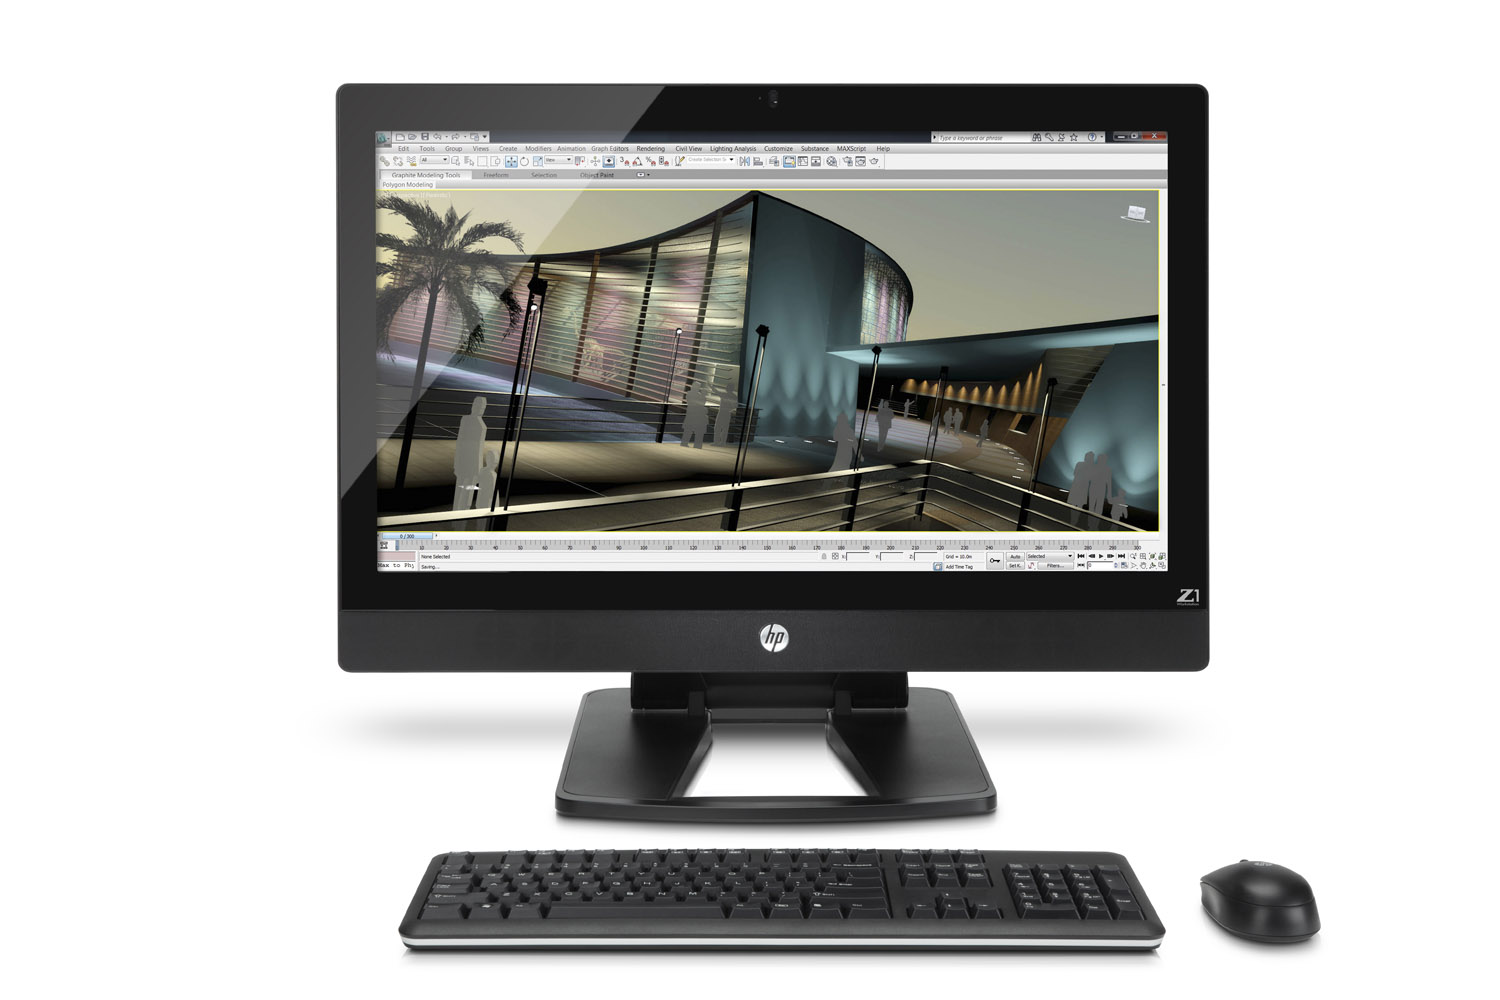 hp to release z1 all in one workstation in april specs. Black Bedroom Furniture Sets. Home Design Ideas